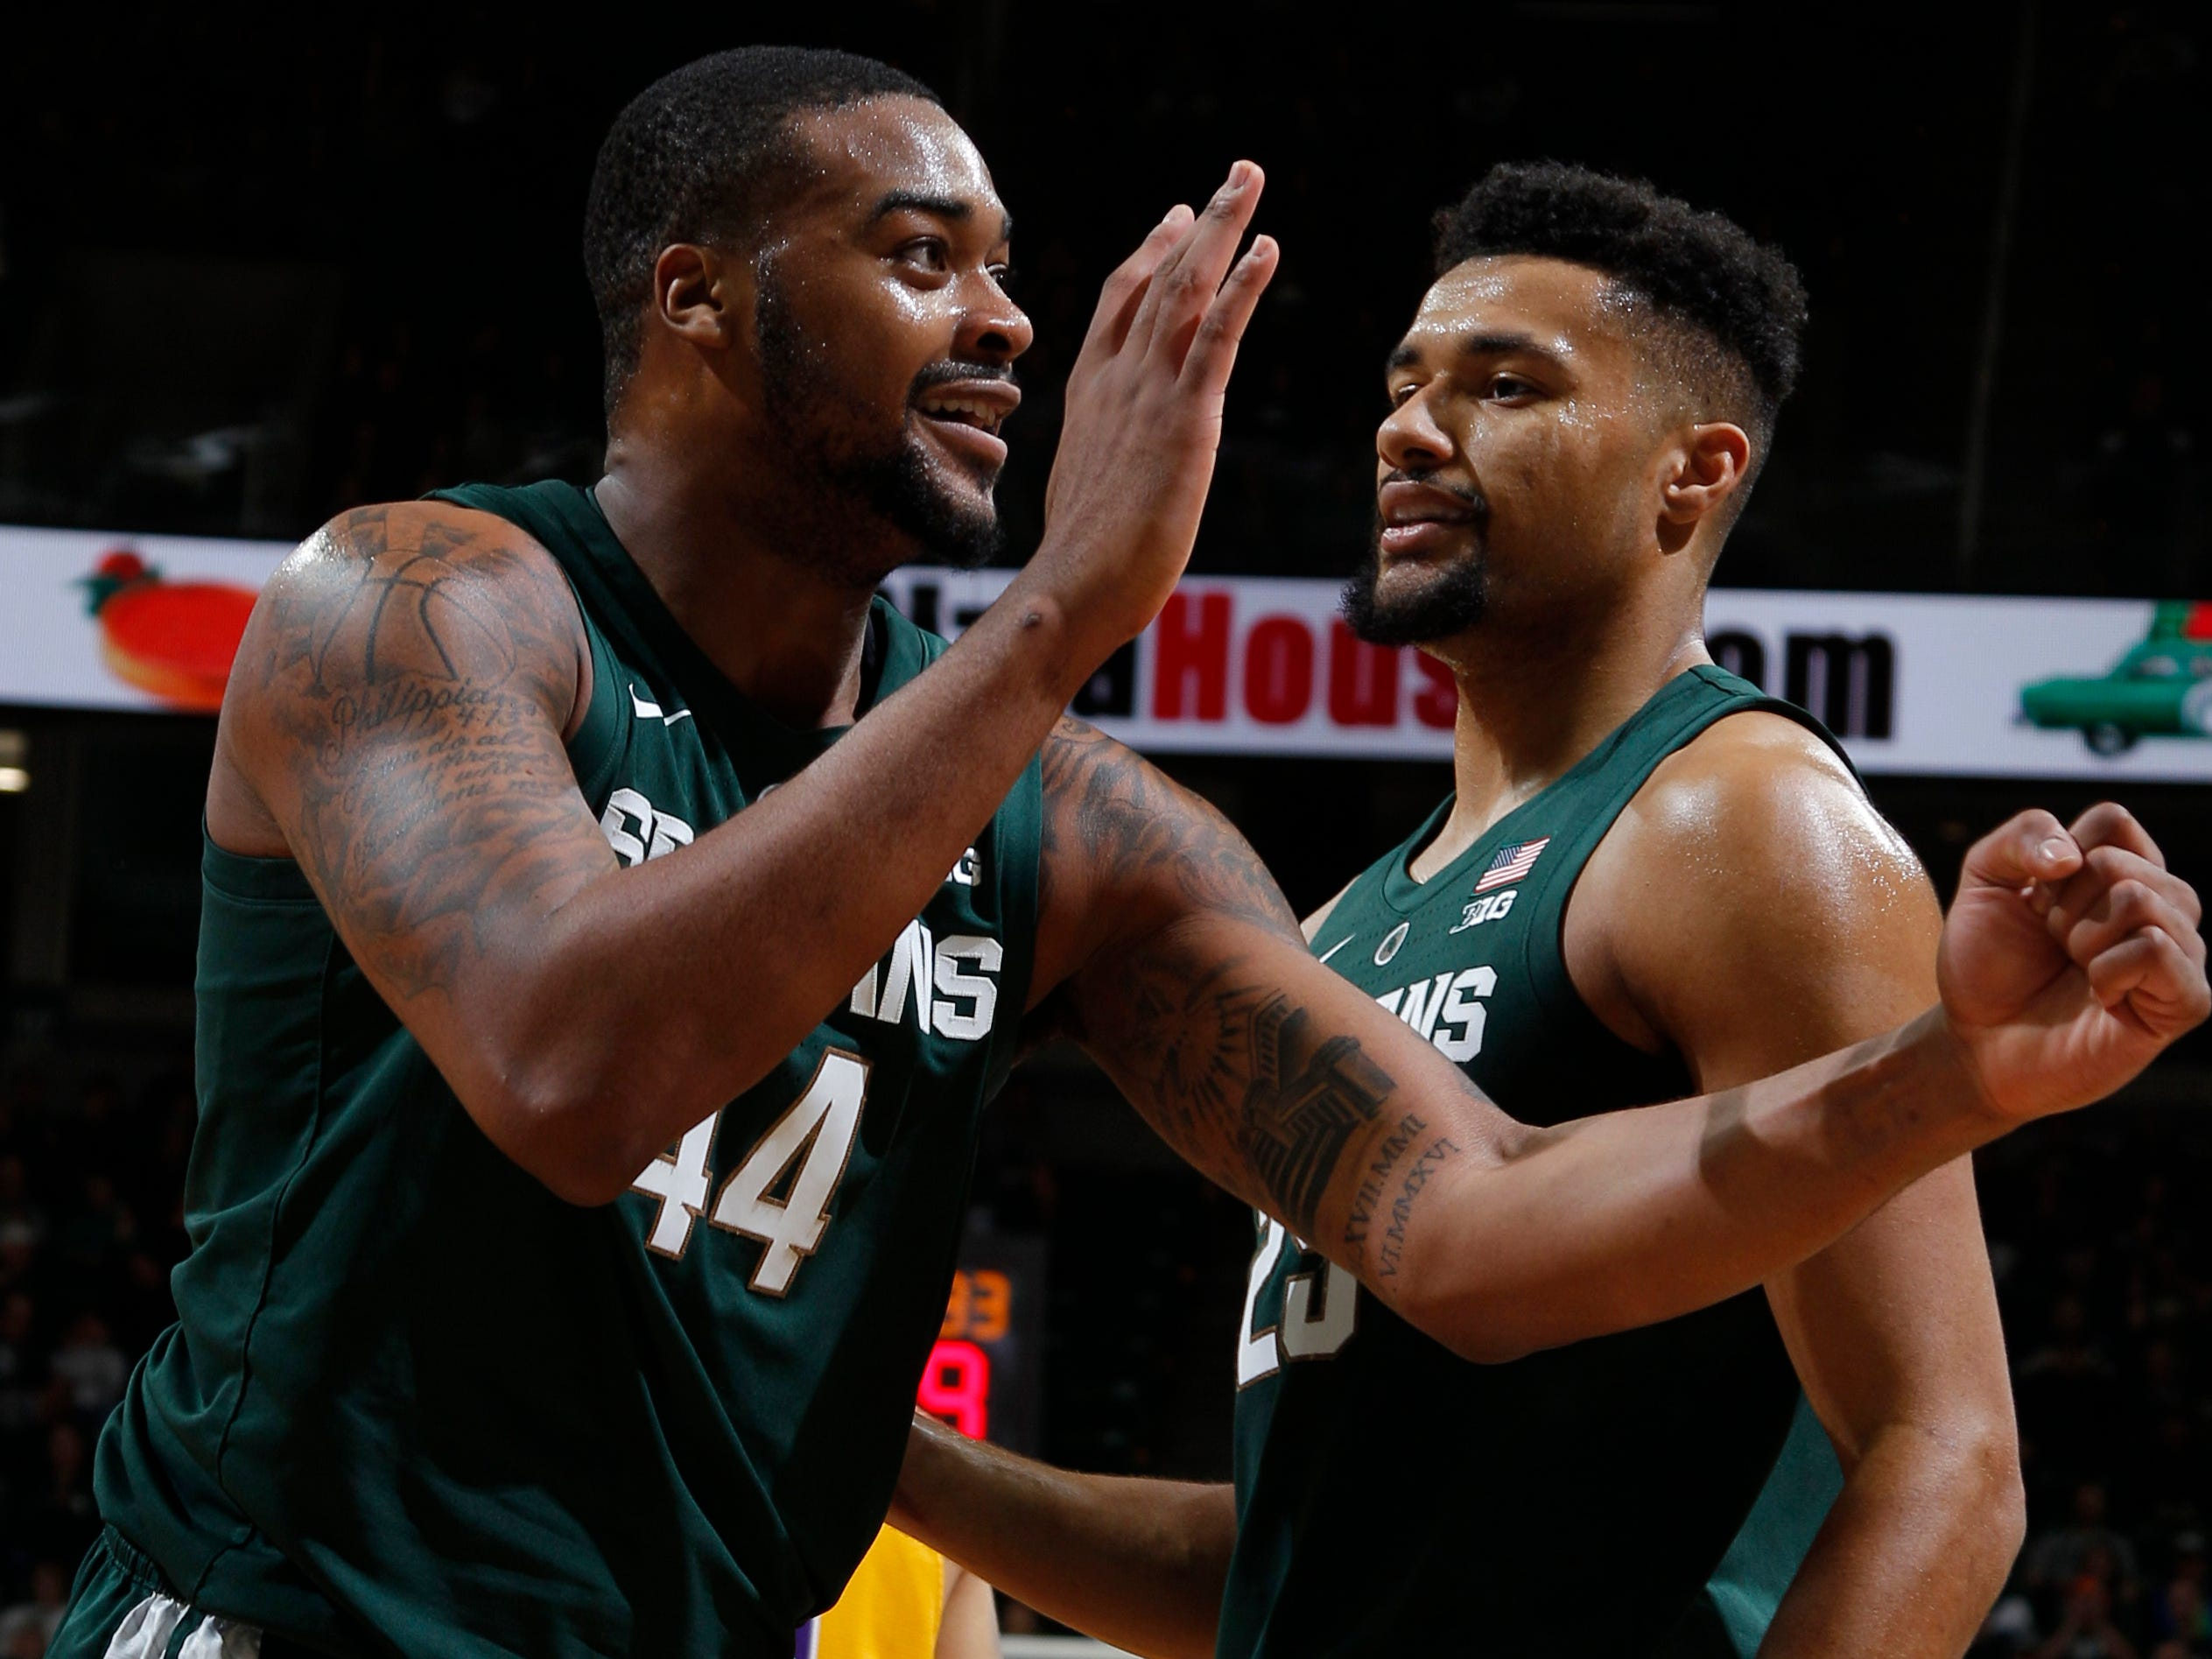 Michigan State's Nick Ward, left, celebrates during the second half of MSU's 101-33 win on Sunday, Nov. 18, 2018, in East Lansing.